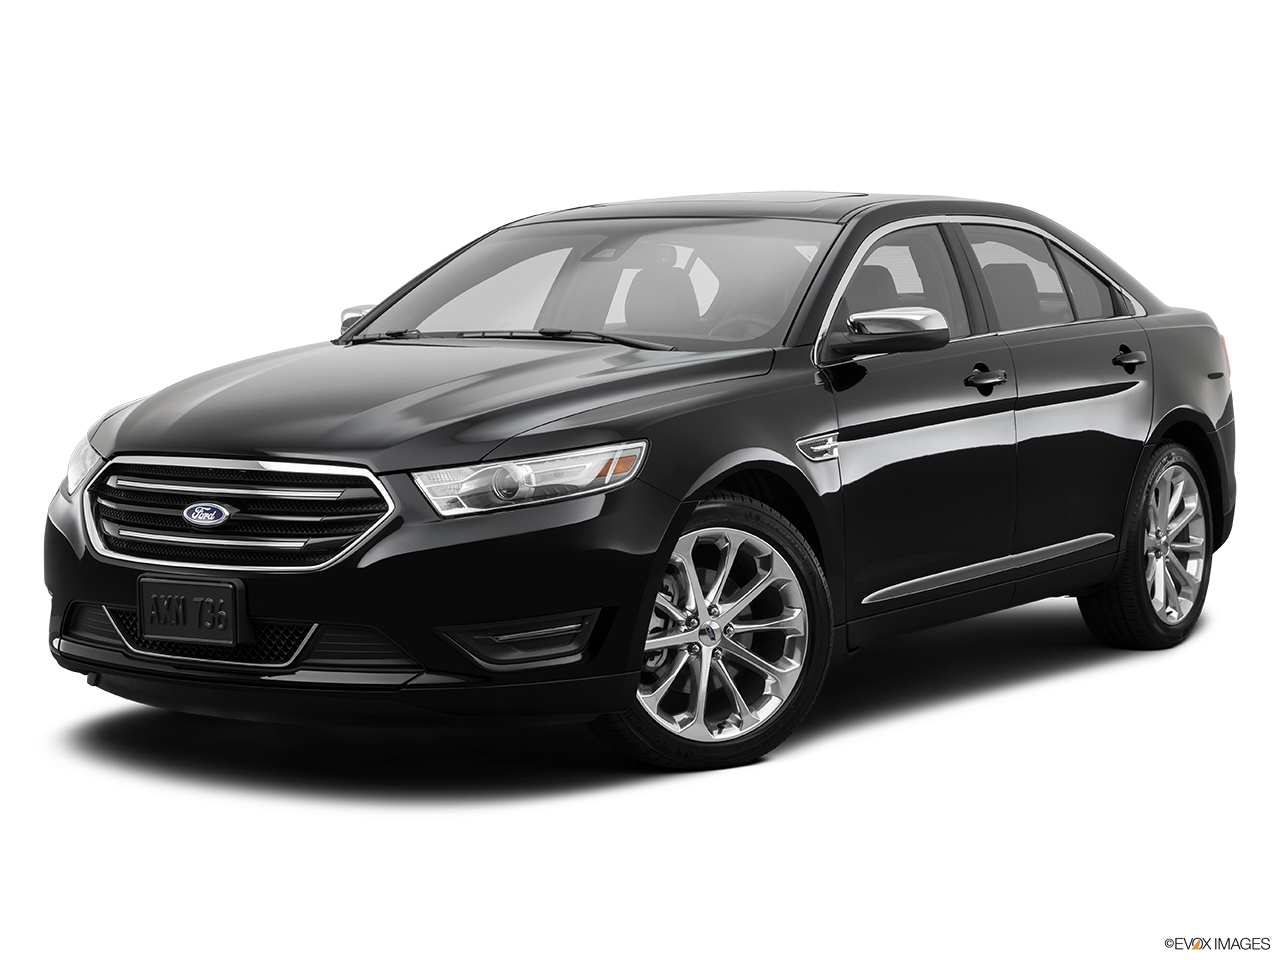 Test Drive A 2016 Ford Taurus at All Star Ford Kilgore in Kilgore